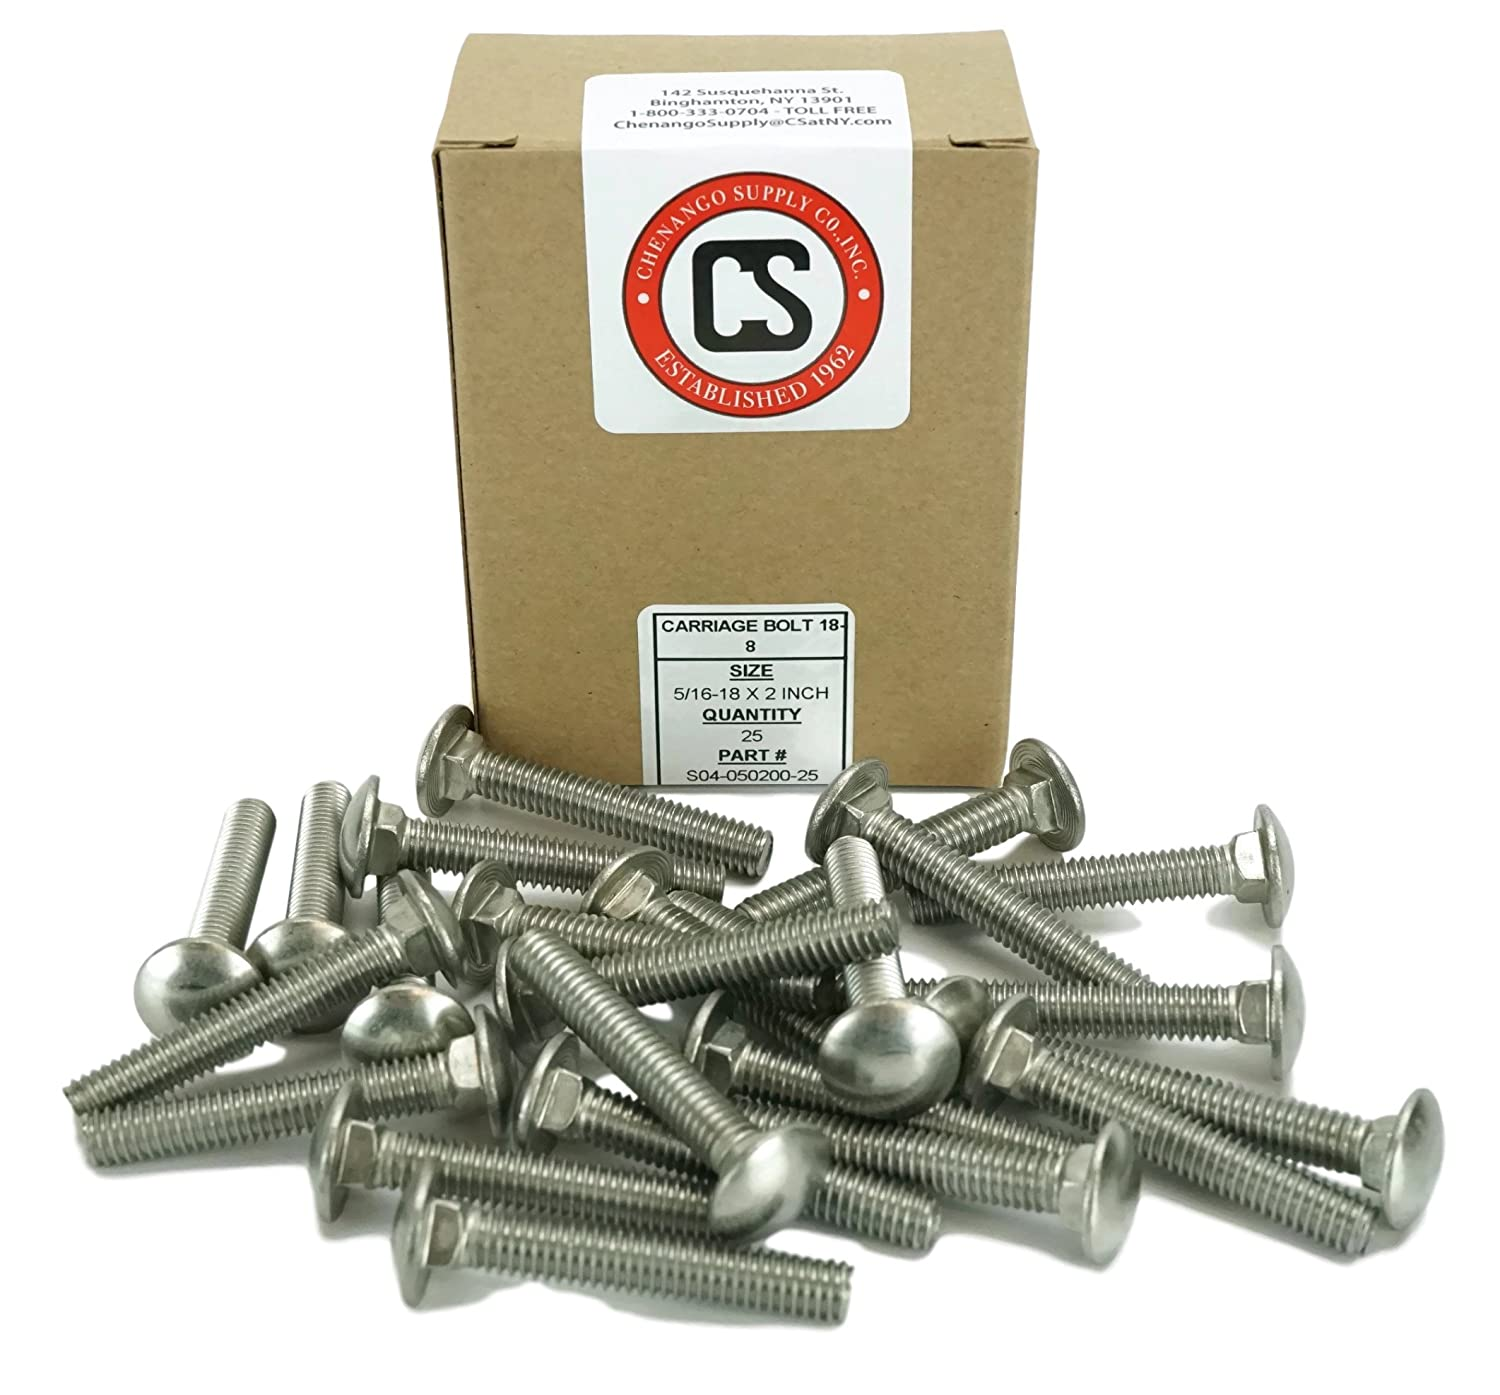 5//16-18x2 Stainless 5//16-18 x 2 Carriage Bolt 18-8 Stainless Steel,25 Pieces 1 to 5 Lengths Available in Listing Chenango Supply